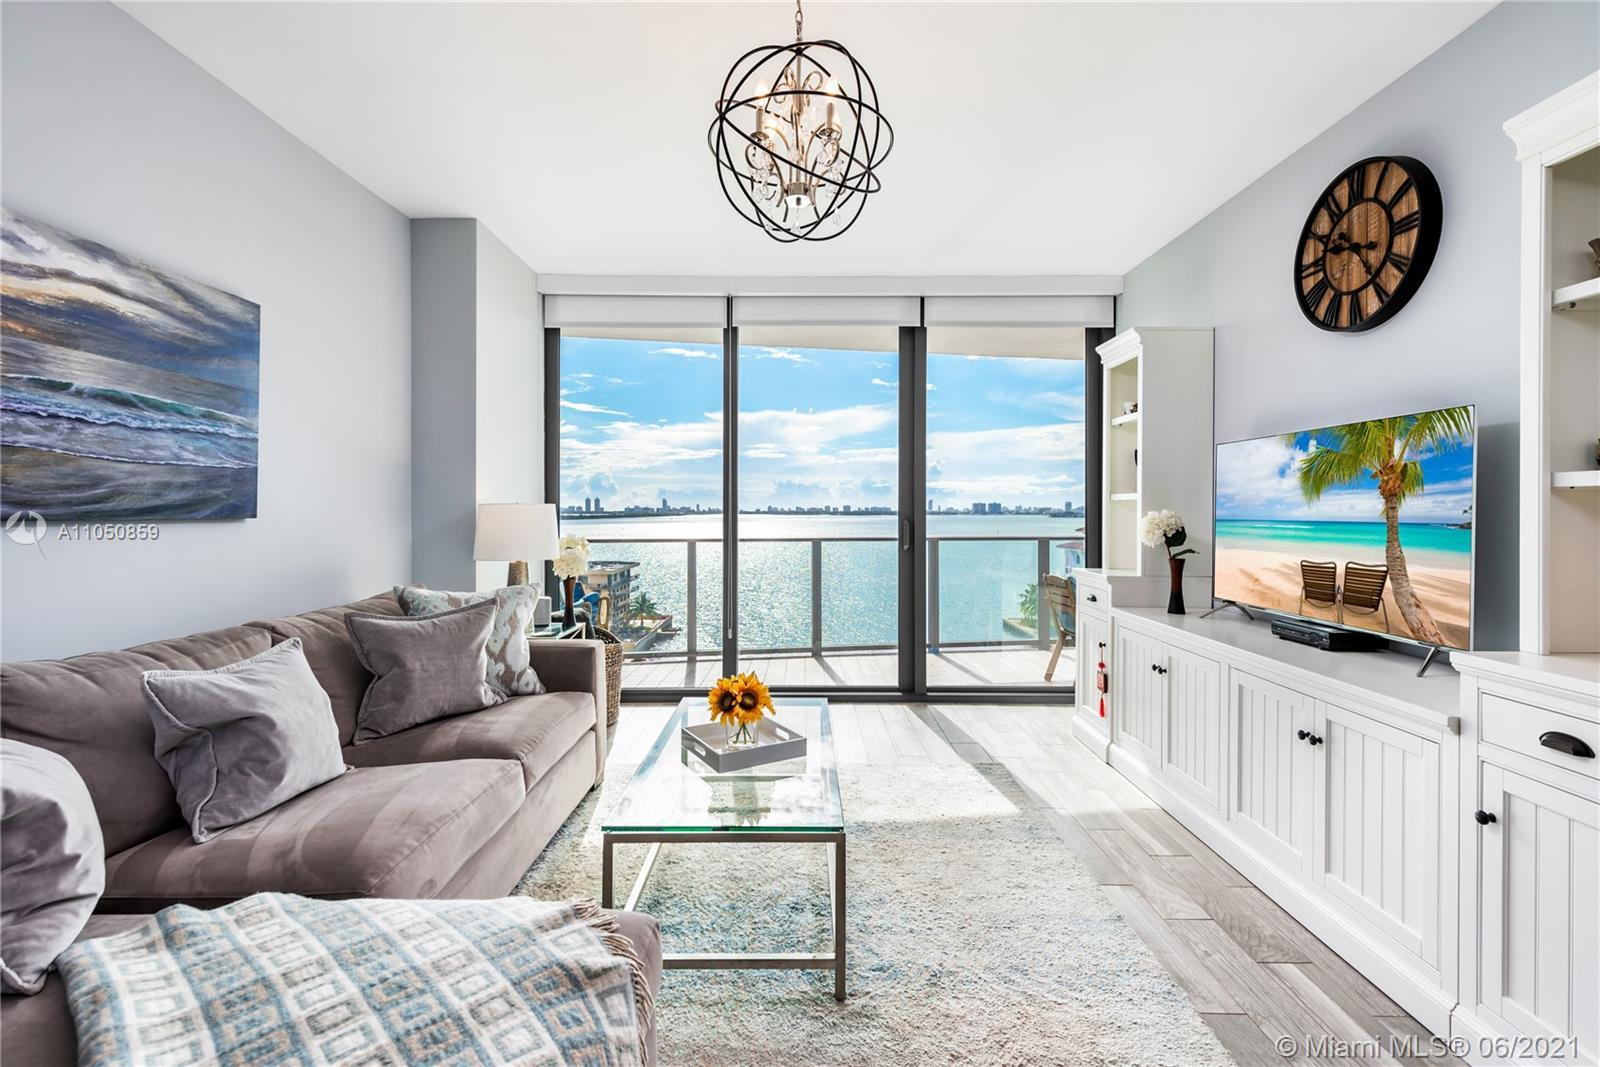 Stunning sunrise/wide bay views from this ultramodern 2br apartment at highly-desirable Icon Bay. A